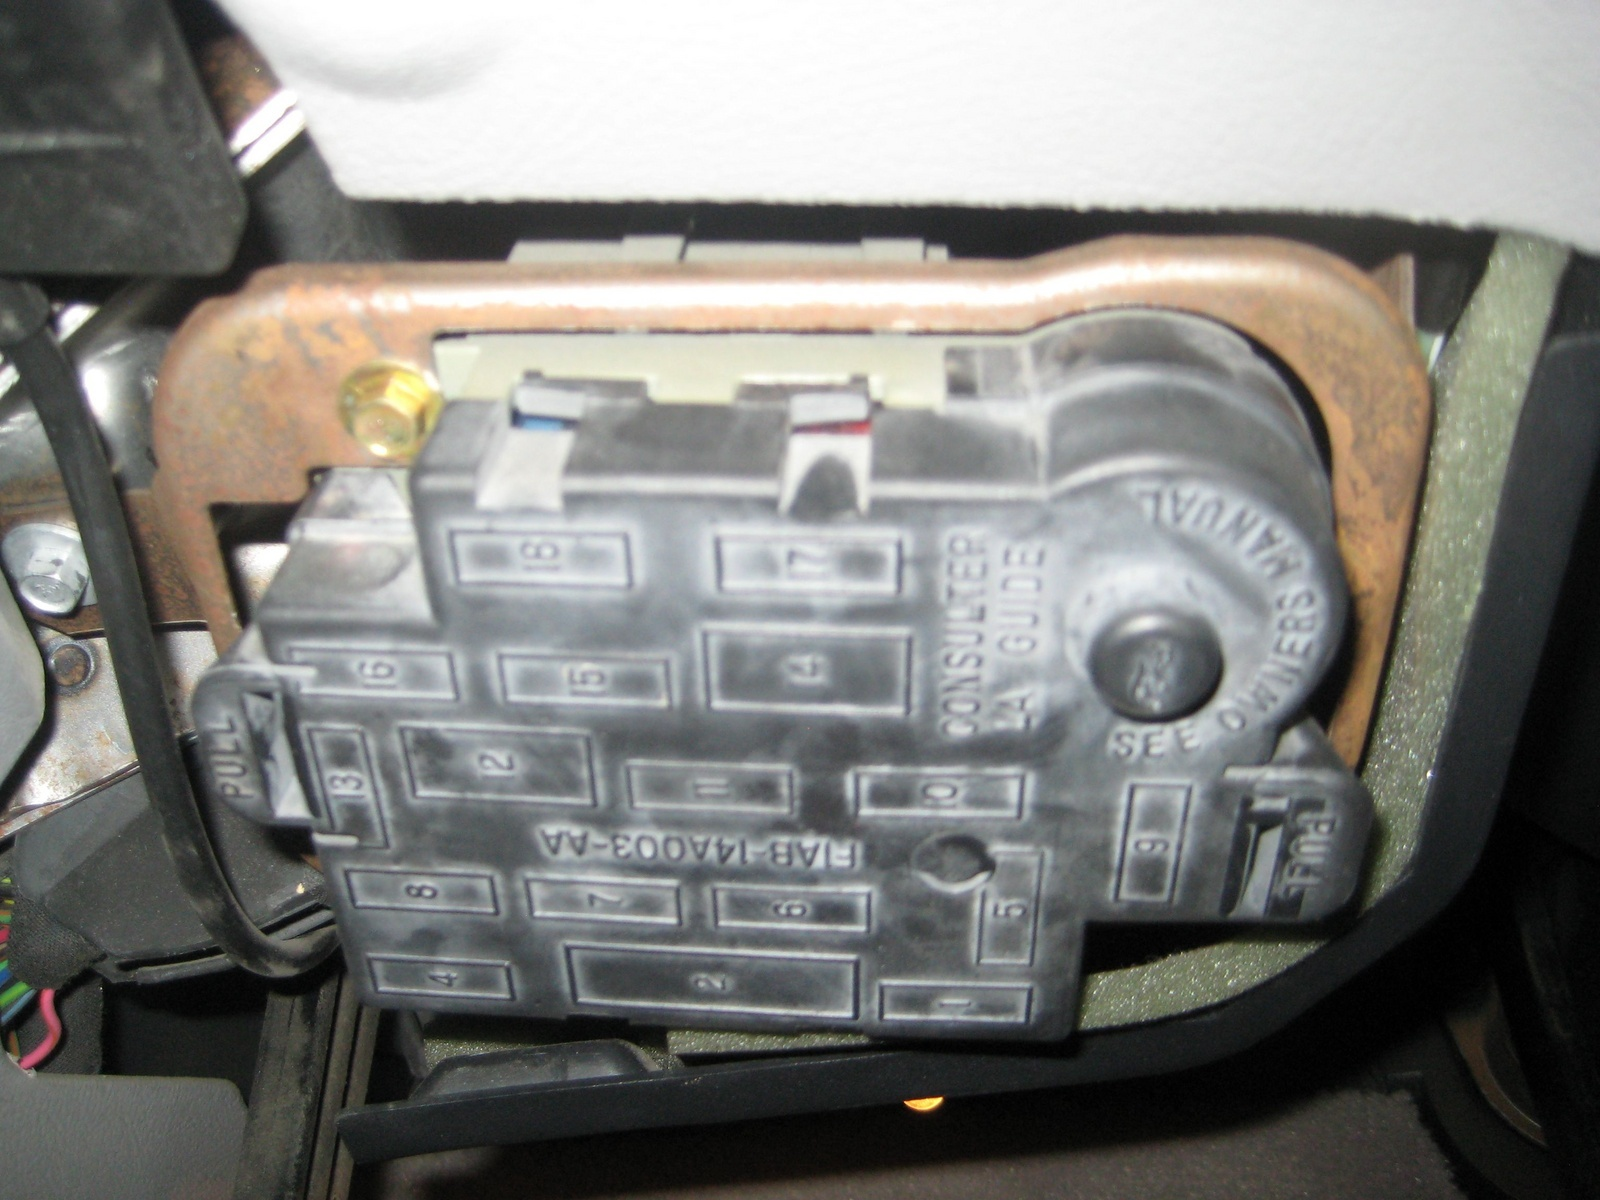 98 Mercury Grand Marquis Fuse Box Data Wiring Schema Location 1994 Volvo Questions How Do I Open The Inside On 20s